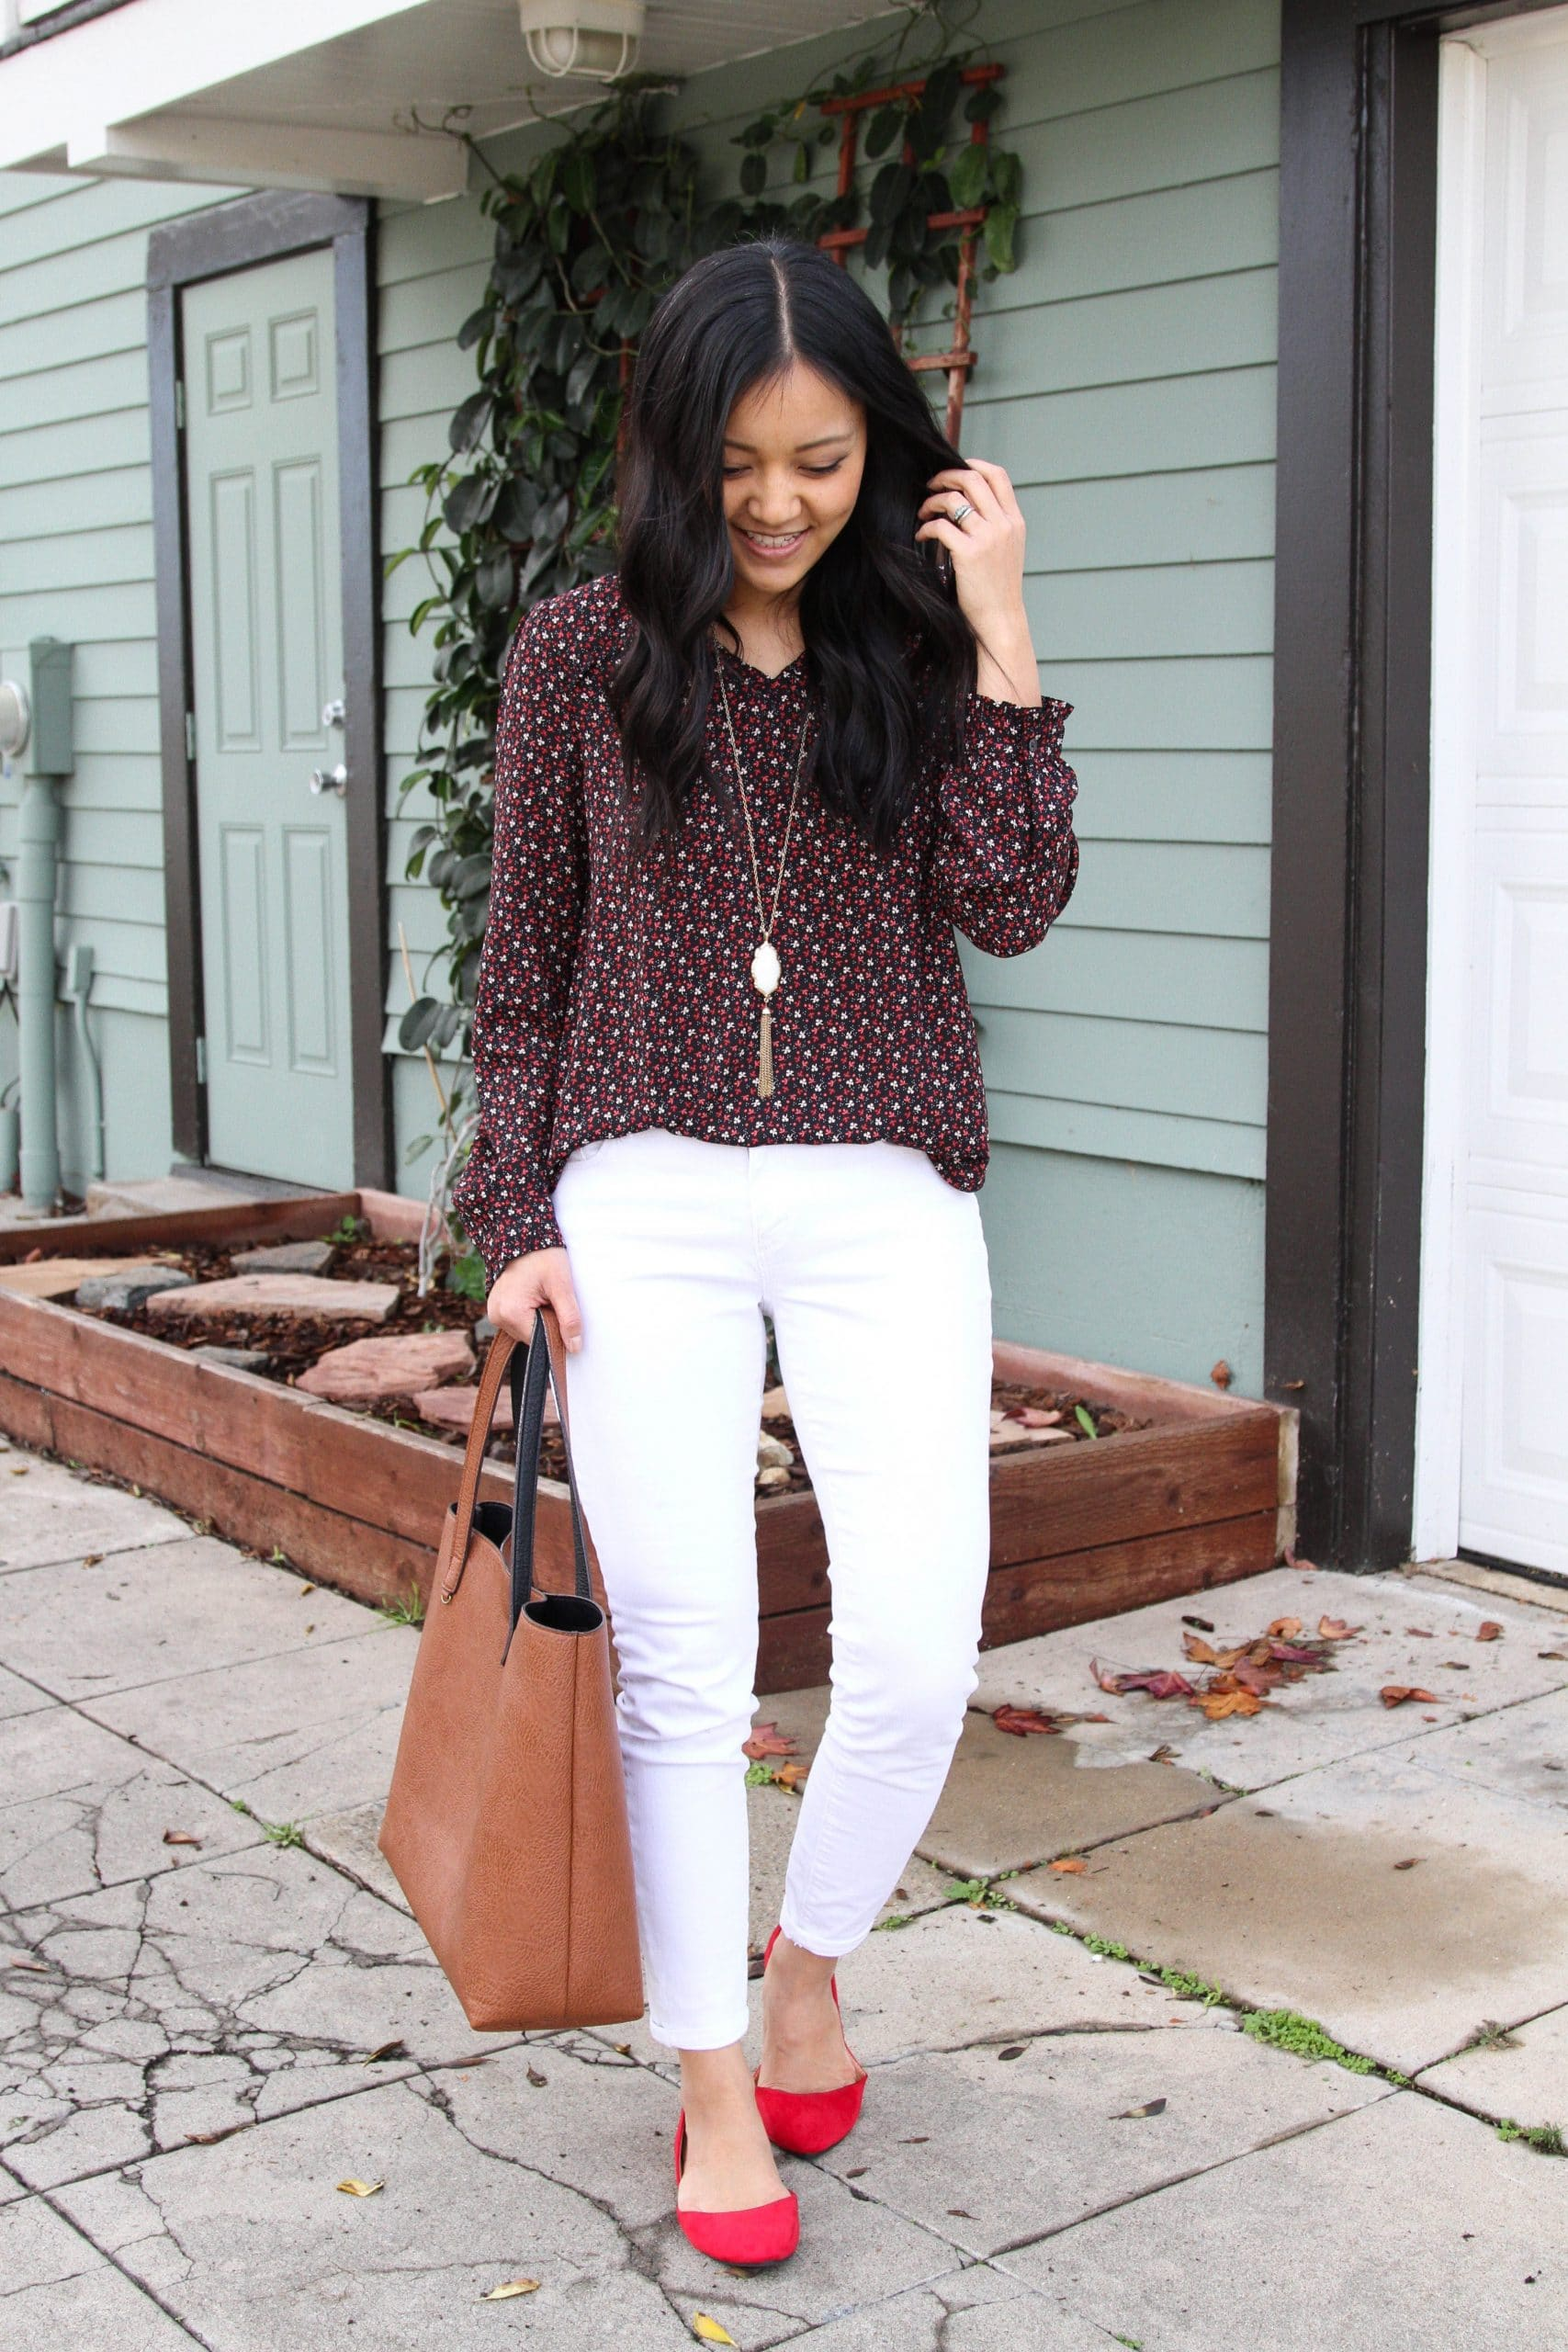 White Jeans Outfit: floral long-sleeve v-neck top + white skinny jeans + red faux suede flats + cognac tote bag + long gold fringe pendant necklace